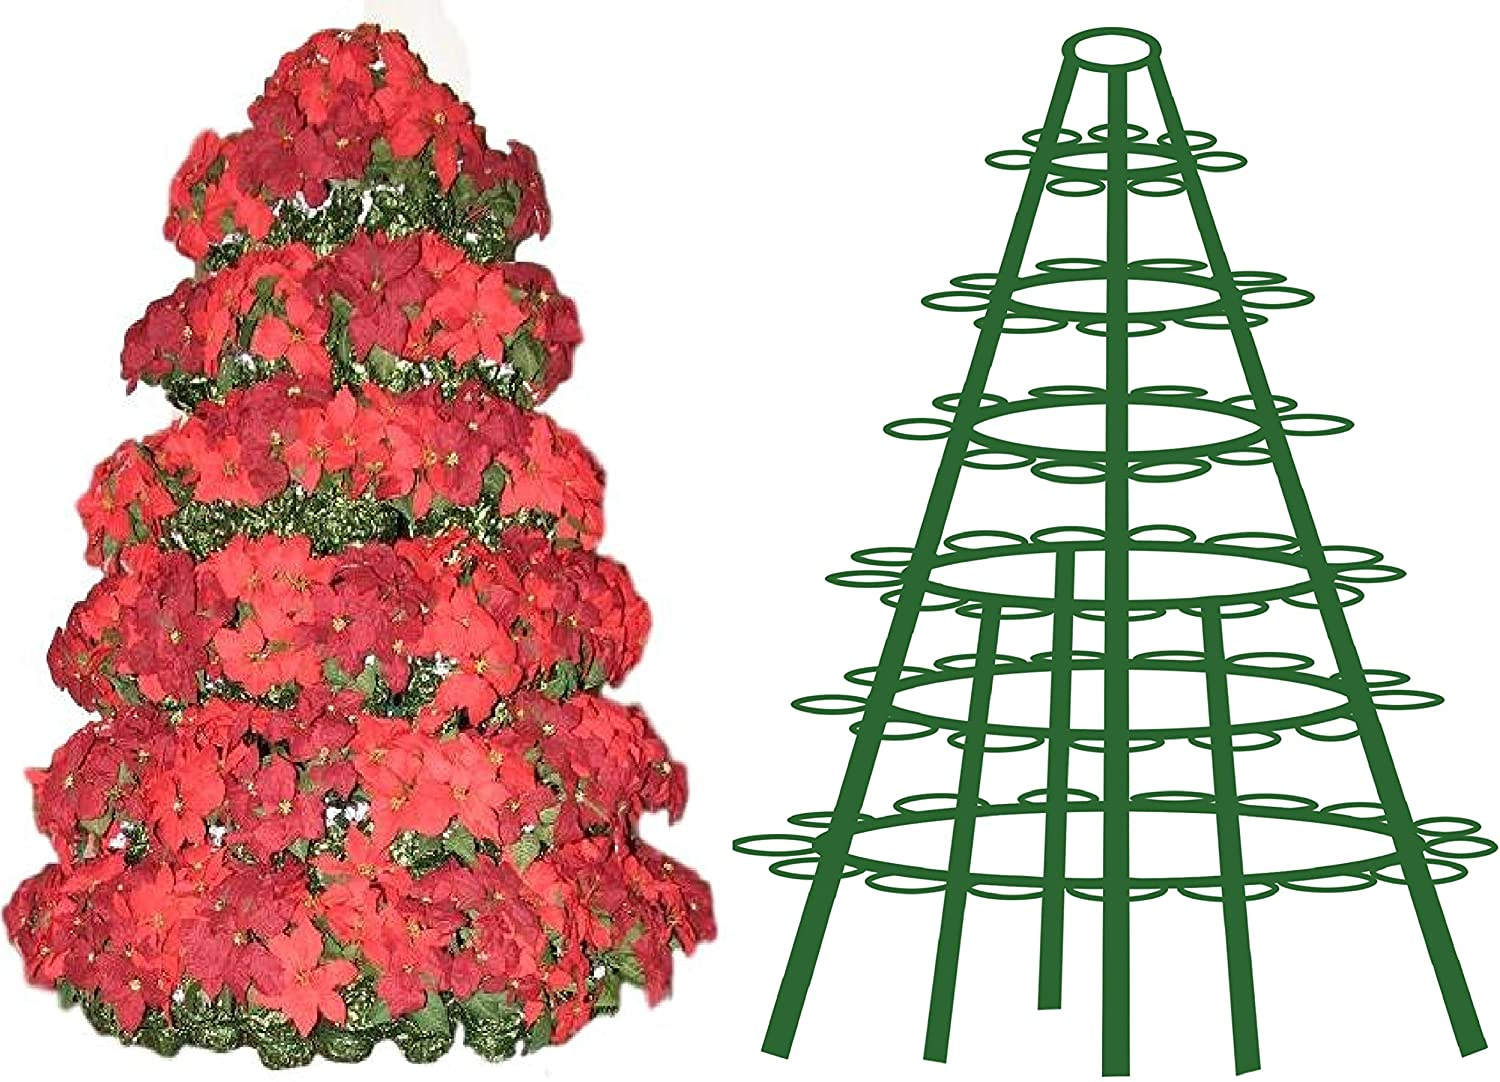 Creative Displays Full Round Poinsettia Tree Rack Display 106FB - Freestanding Vertical Garden Frame | Great for Poinsettias, Flowers, Potted Plants, Succulents, and More (6.5 Ft)